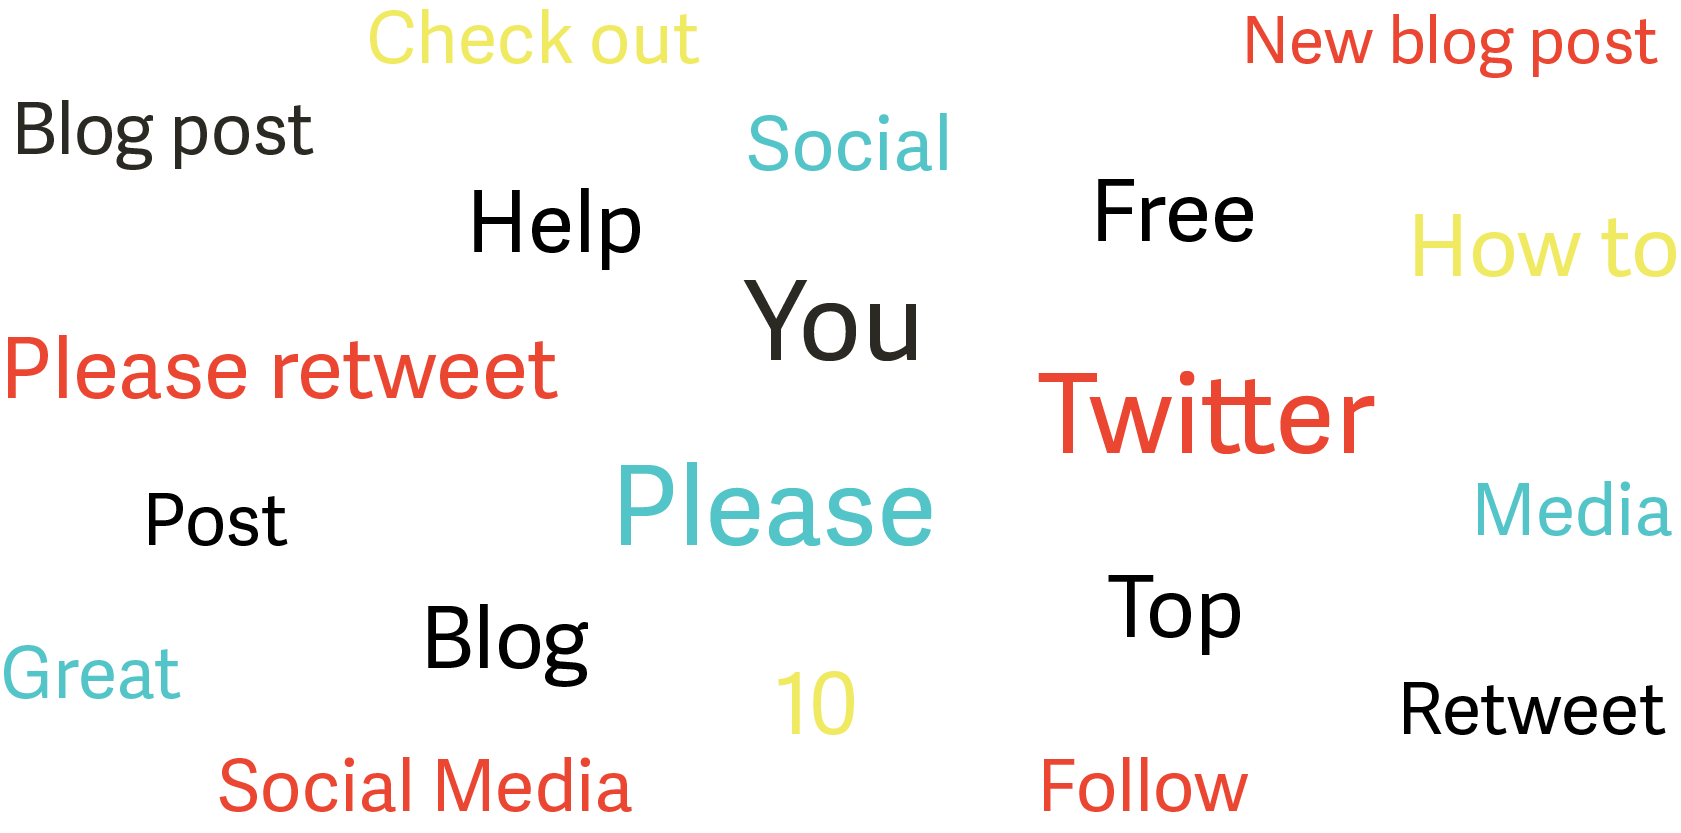 Most retweetable words for Twitter Social Media